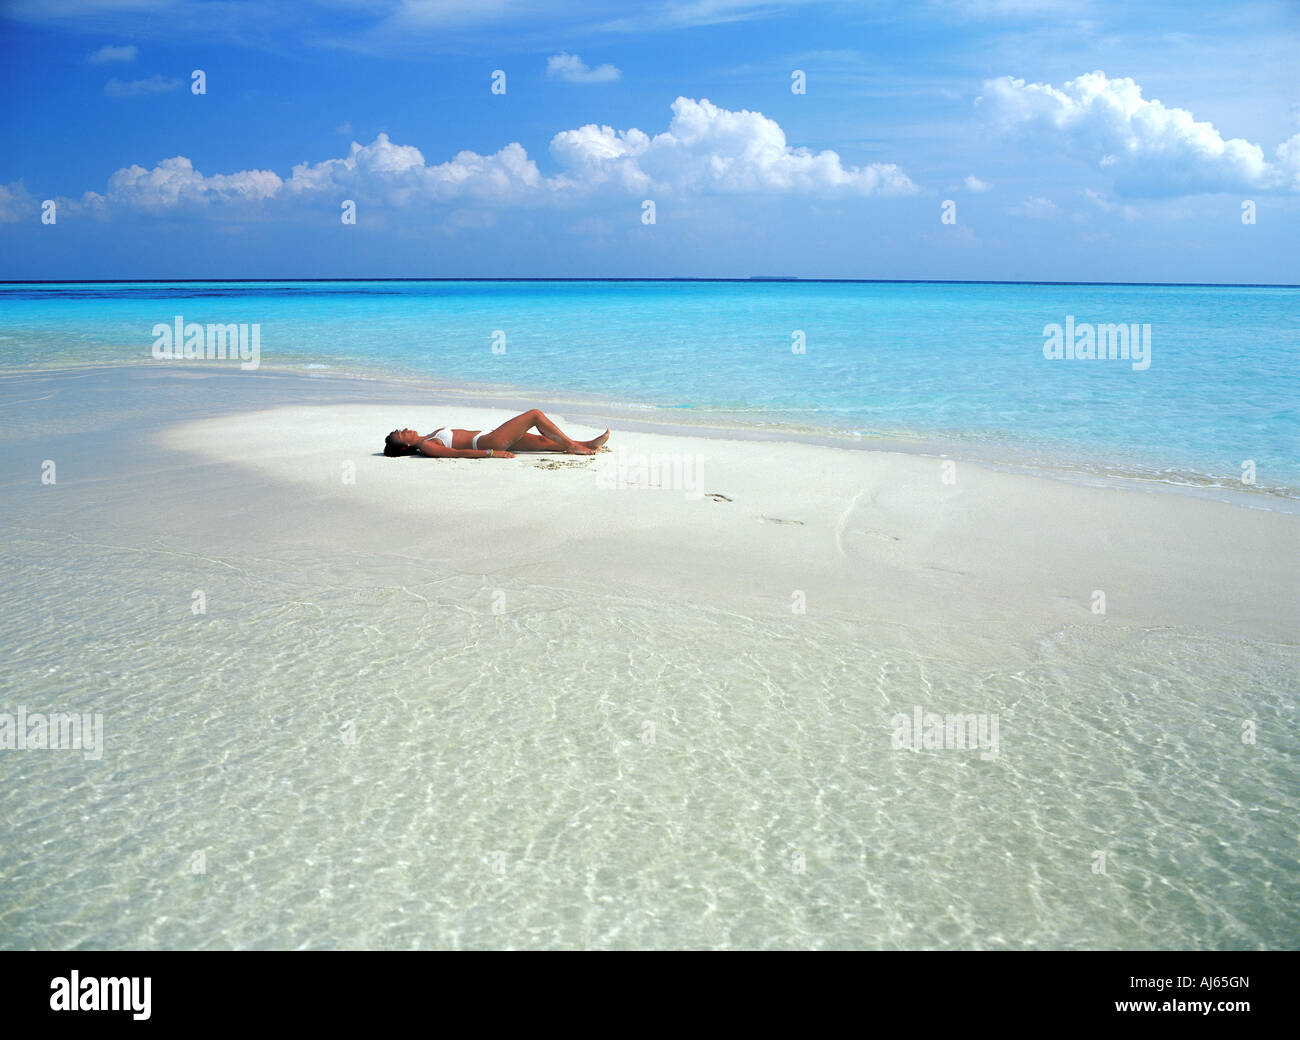 Woman alone on sandbar in Maldive Islands surrounded by Indian Ocean - Stock Image